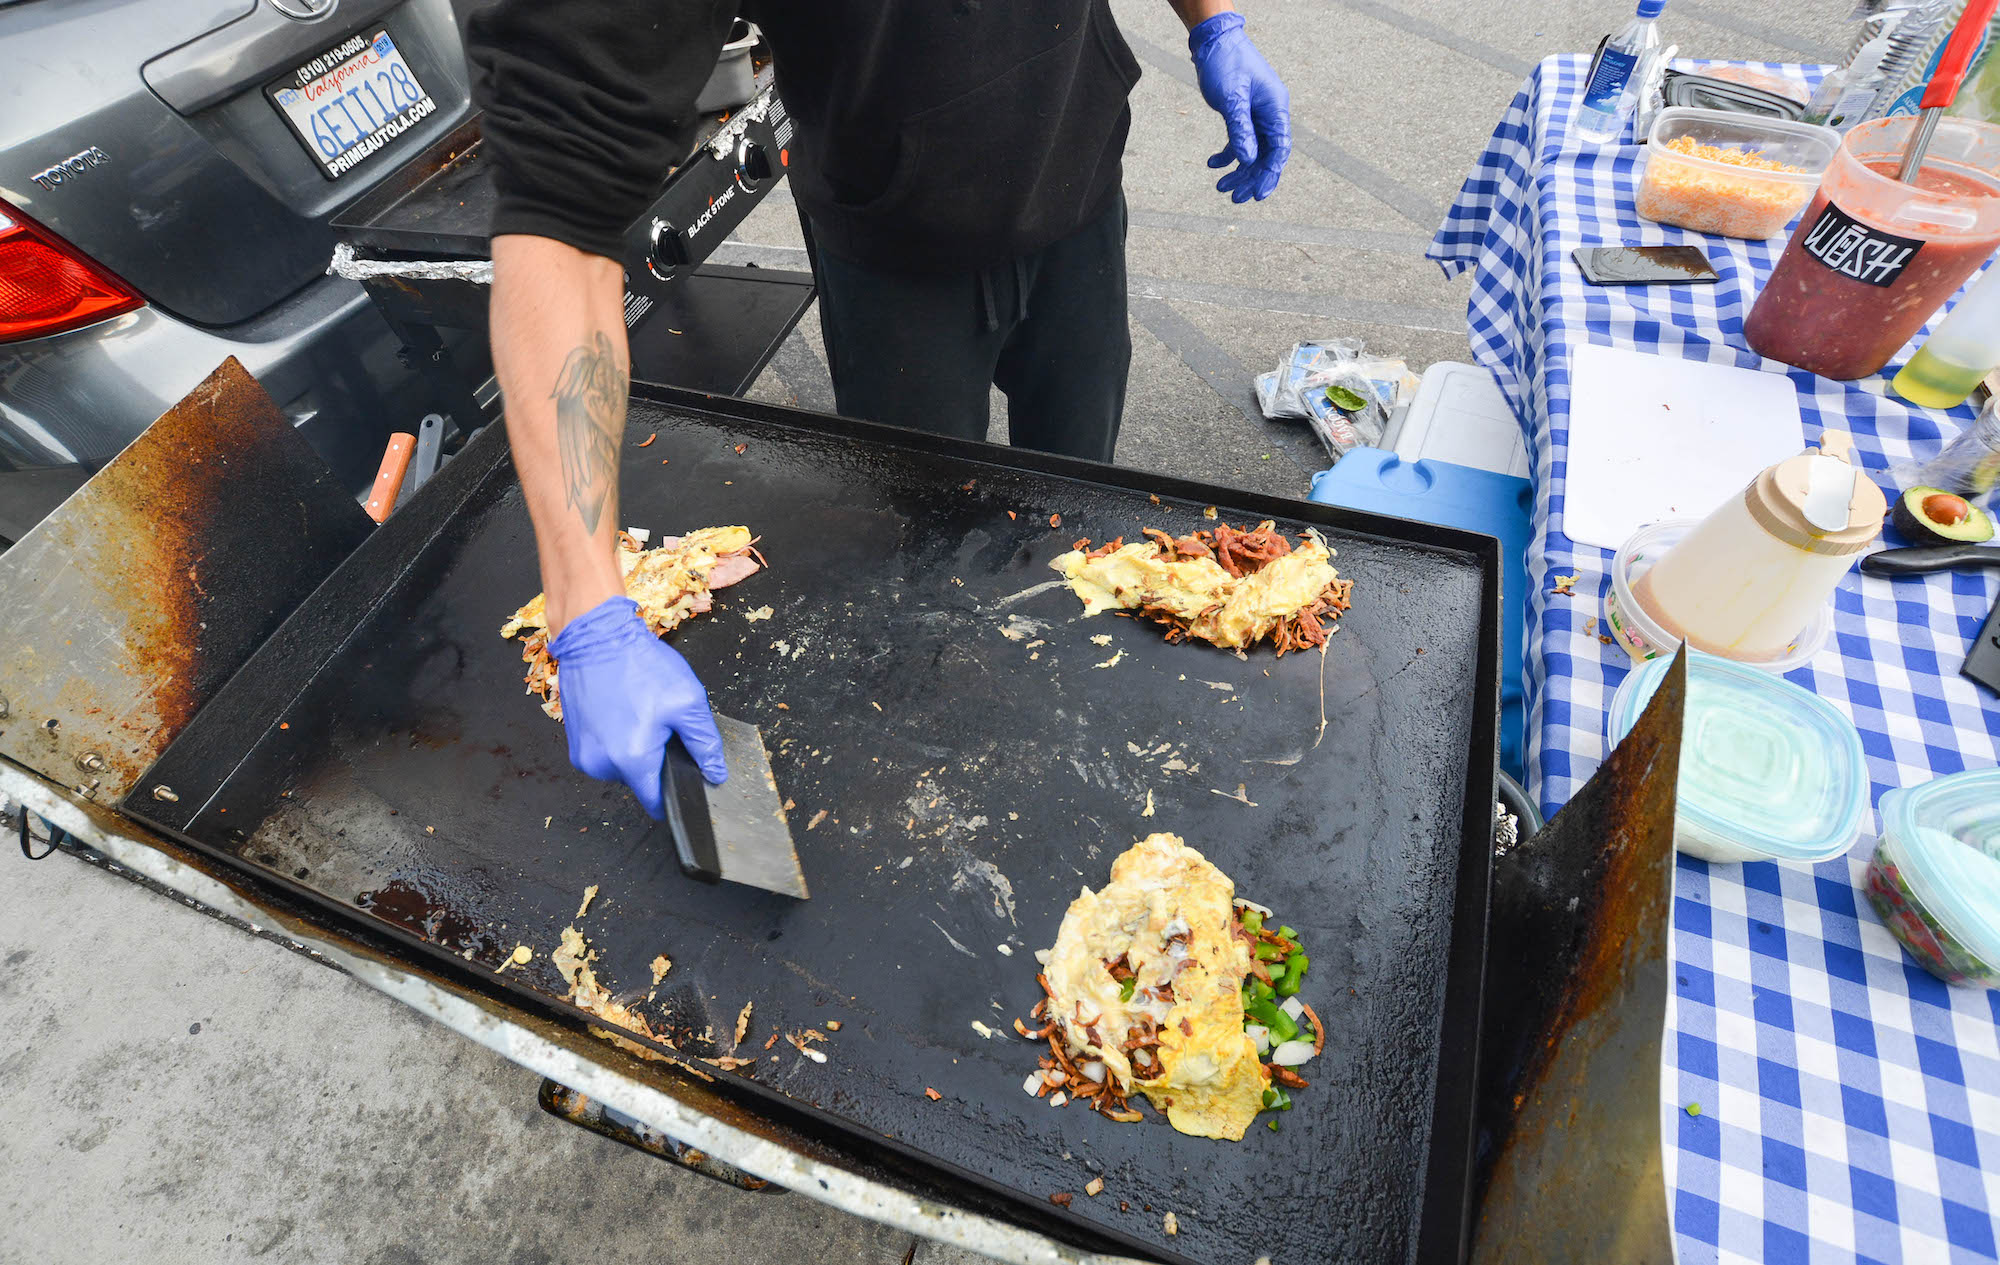 A hand with a blue glove prepares breakfast burritos from a street stand.